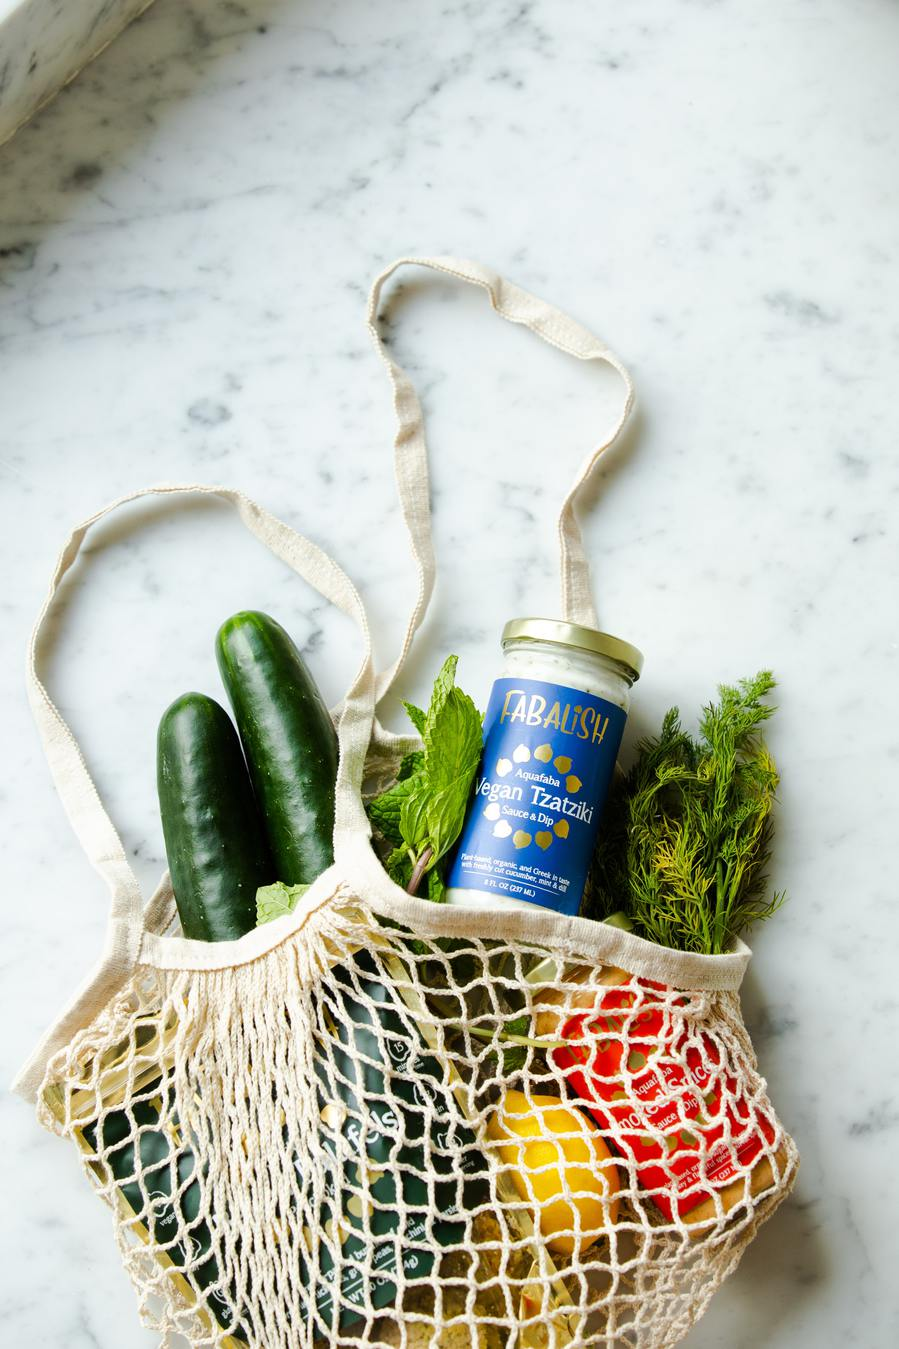 Knitted shopping bag with groceries